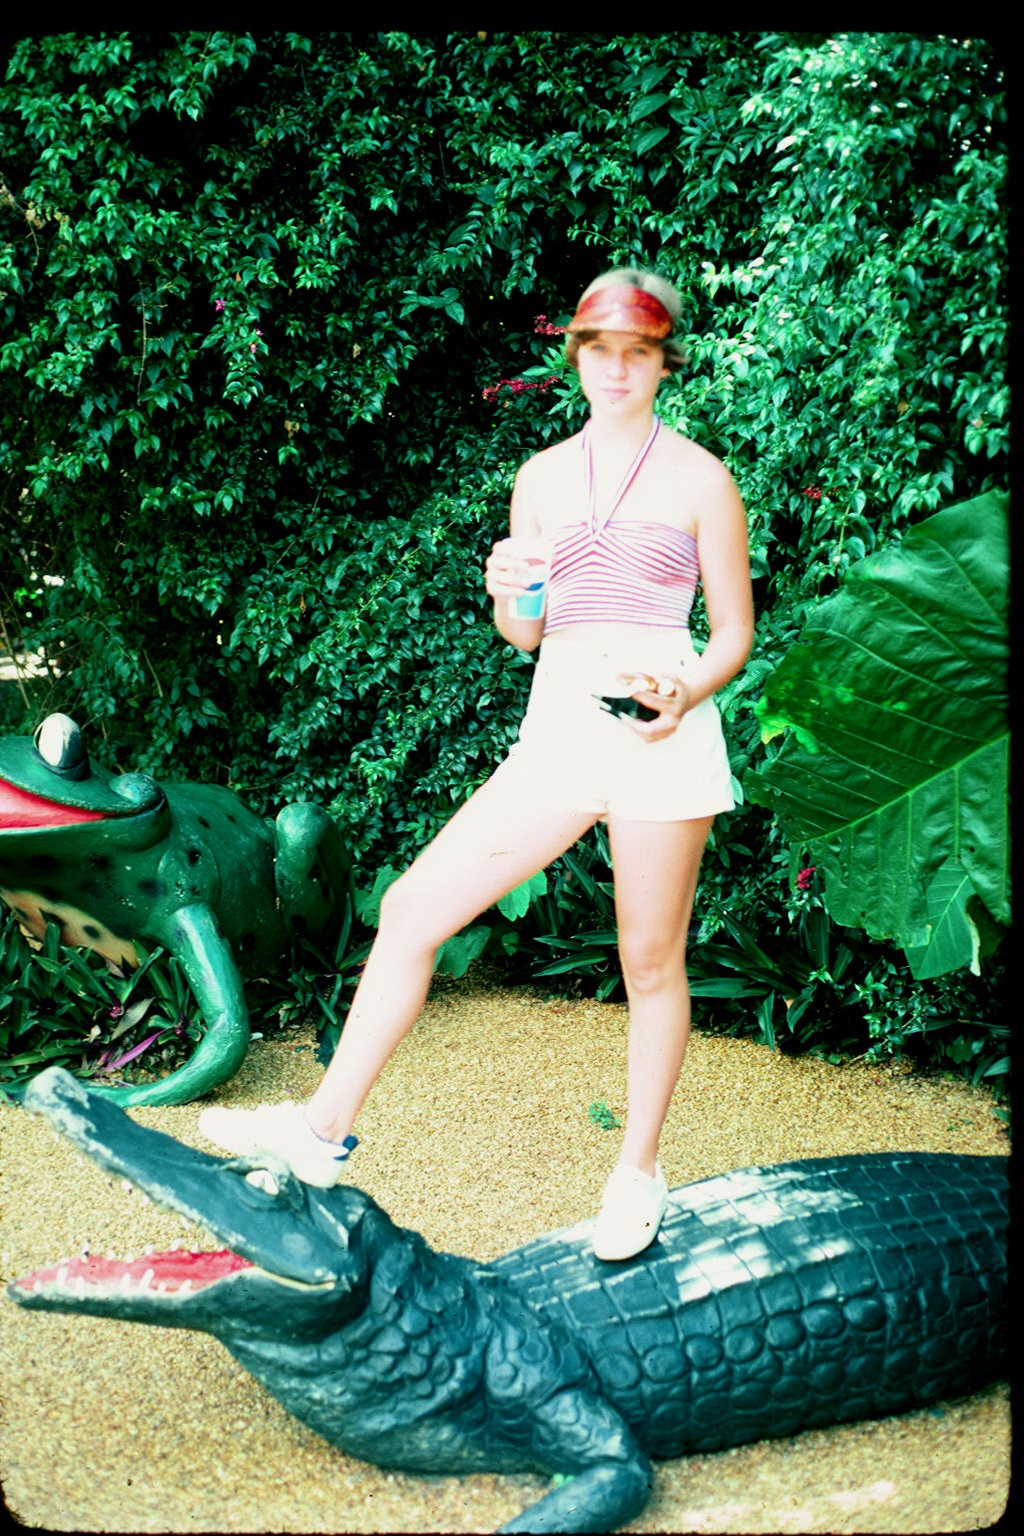 me on the gator